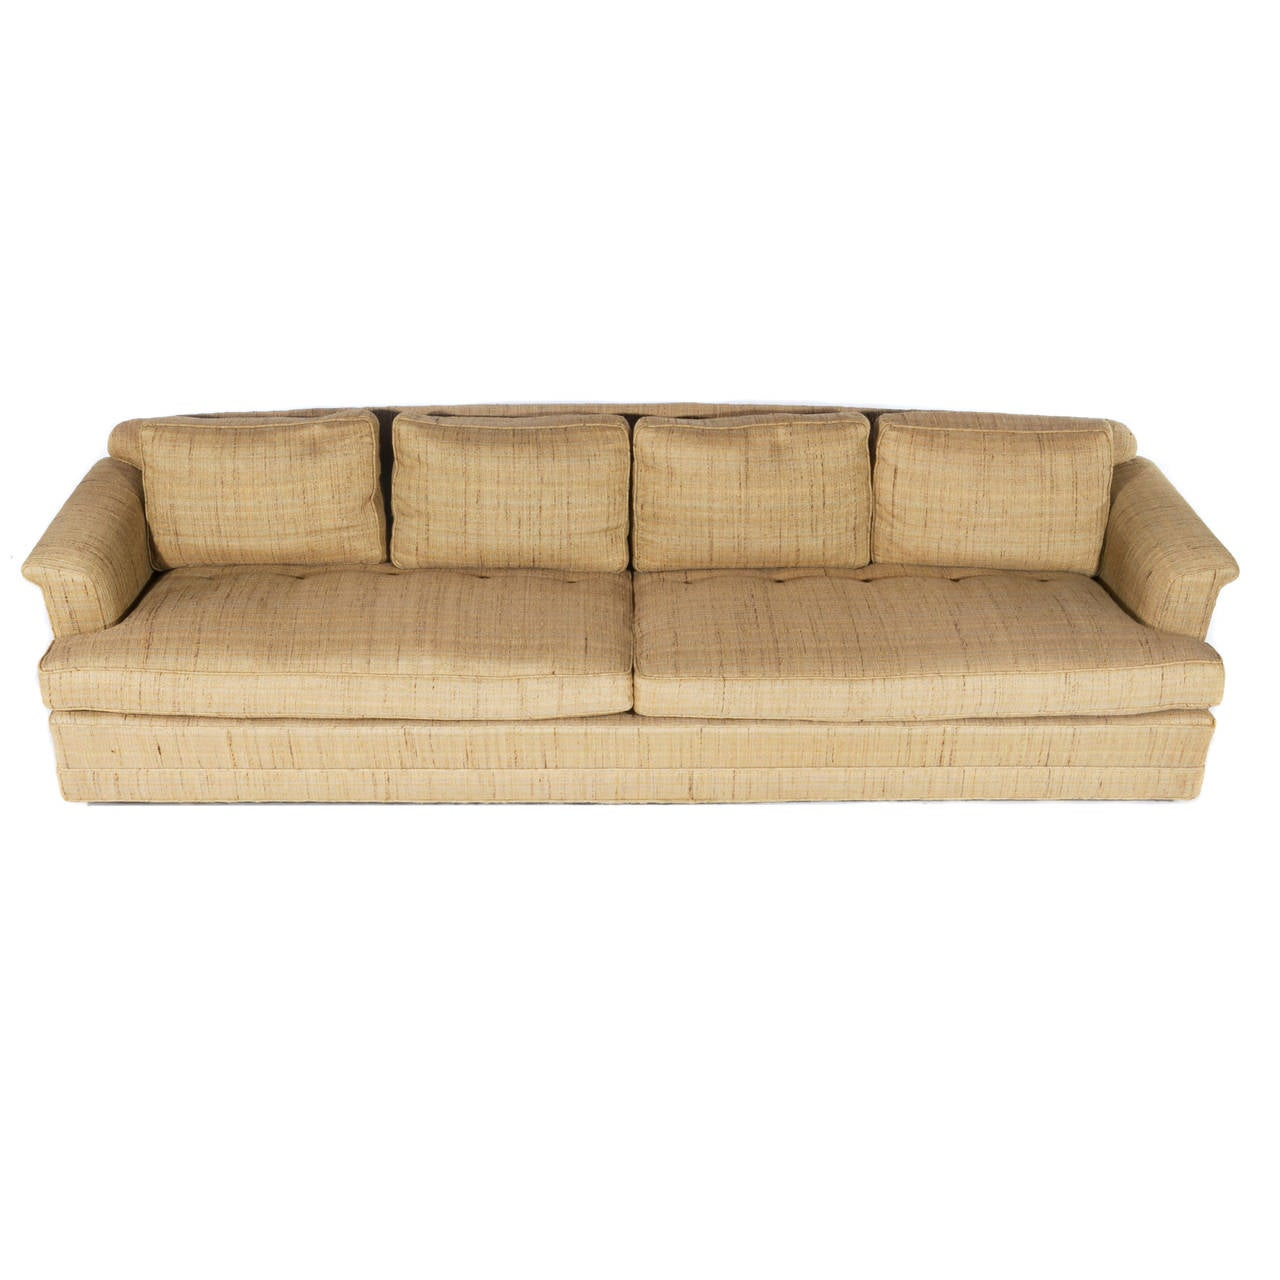 "Classic Dunbar form with down-stuffed seat and back cushions. Raised on casters. Large, deep and comfortable, with high-quality Dunbar construction. Signed Dunbar in decking. Measure: Arms are 21-1/2"" high.   This item is in our Chicago warehouse."